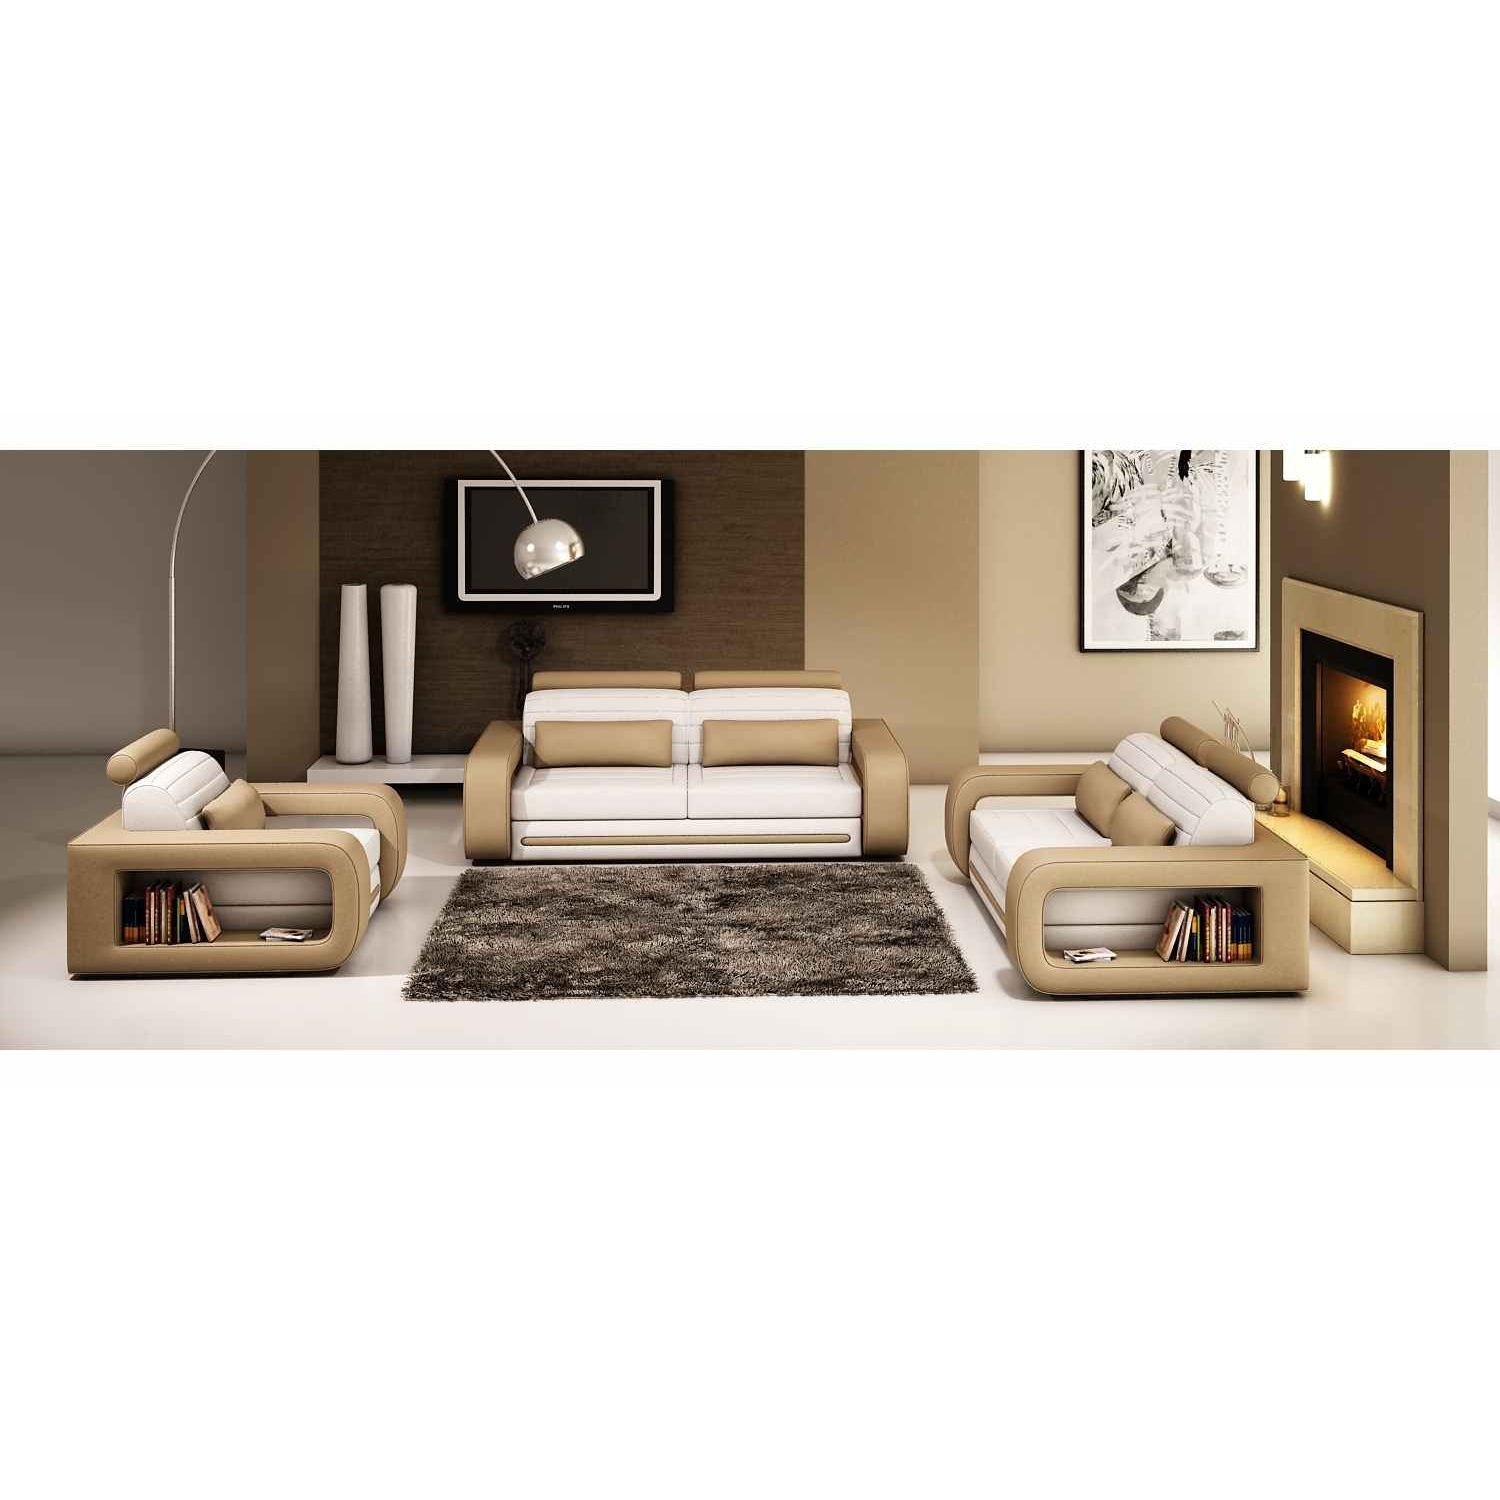 deco in paris canape 3 2 1 places en cuir blanc et marron malone malone 3 2 1 blanc marron. Black Bedroom Furniture Sets. Home Design Ideas